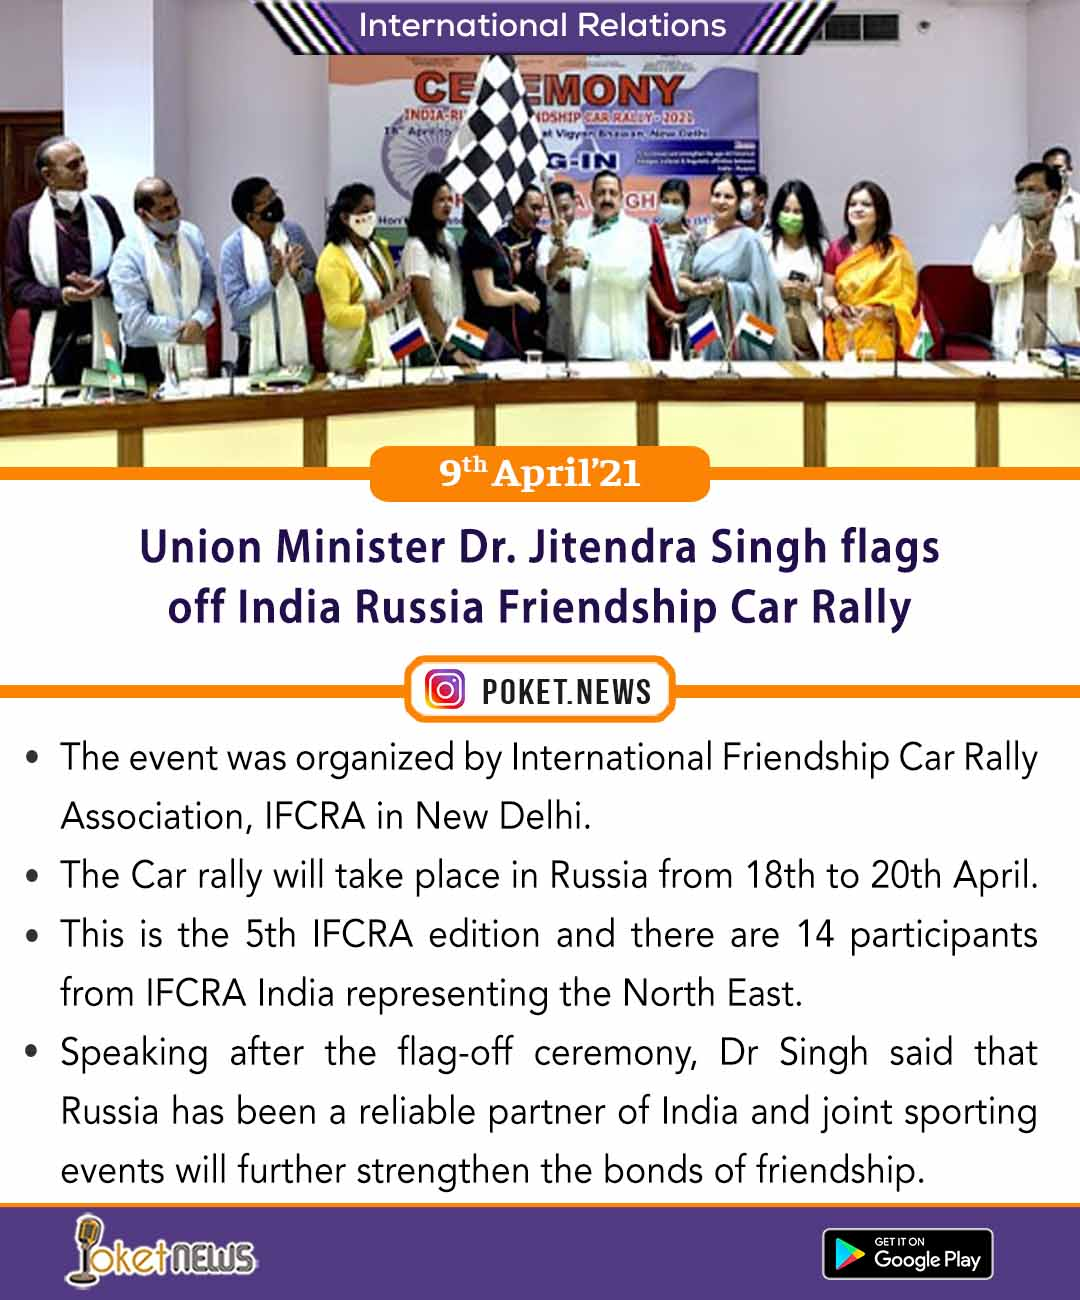 Union Minister Dr. Jitendra Singh flags off India Russia Friendship Car Rally